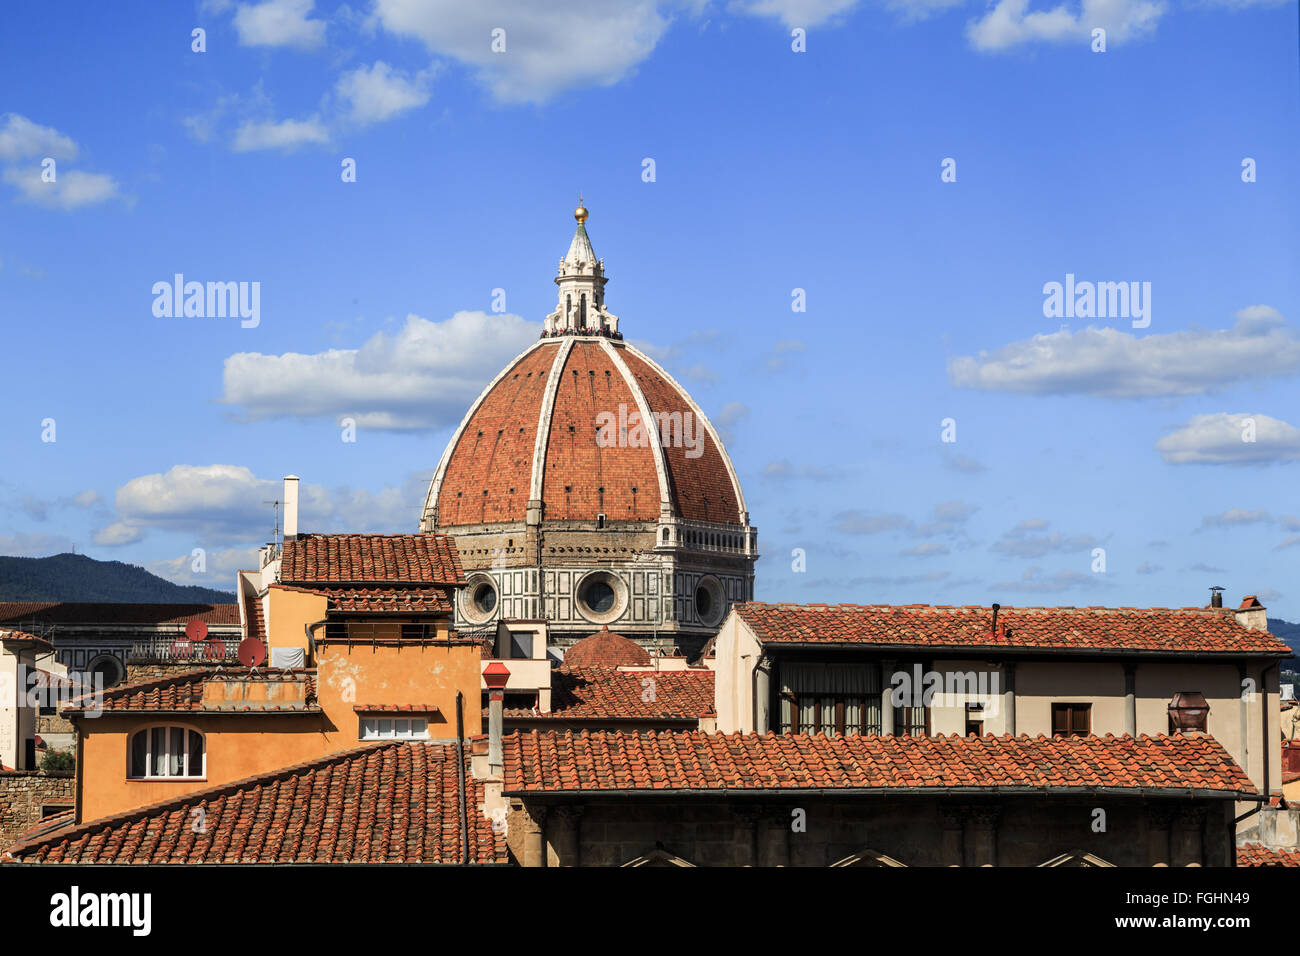 Close up top view of Florence houses with orange roofs and with a big dome, on cloudy blue sky background. - Stock Image